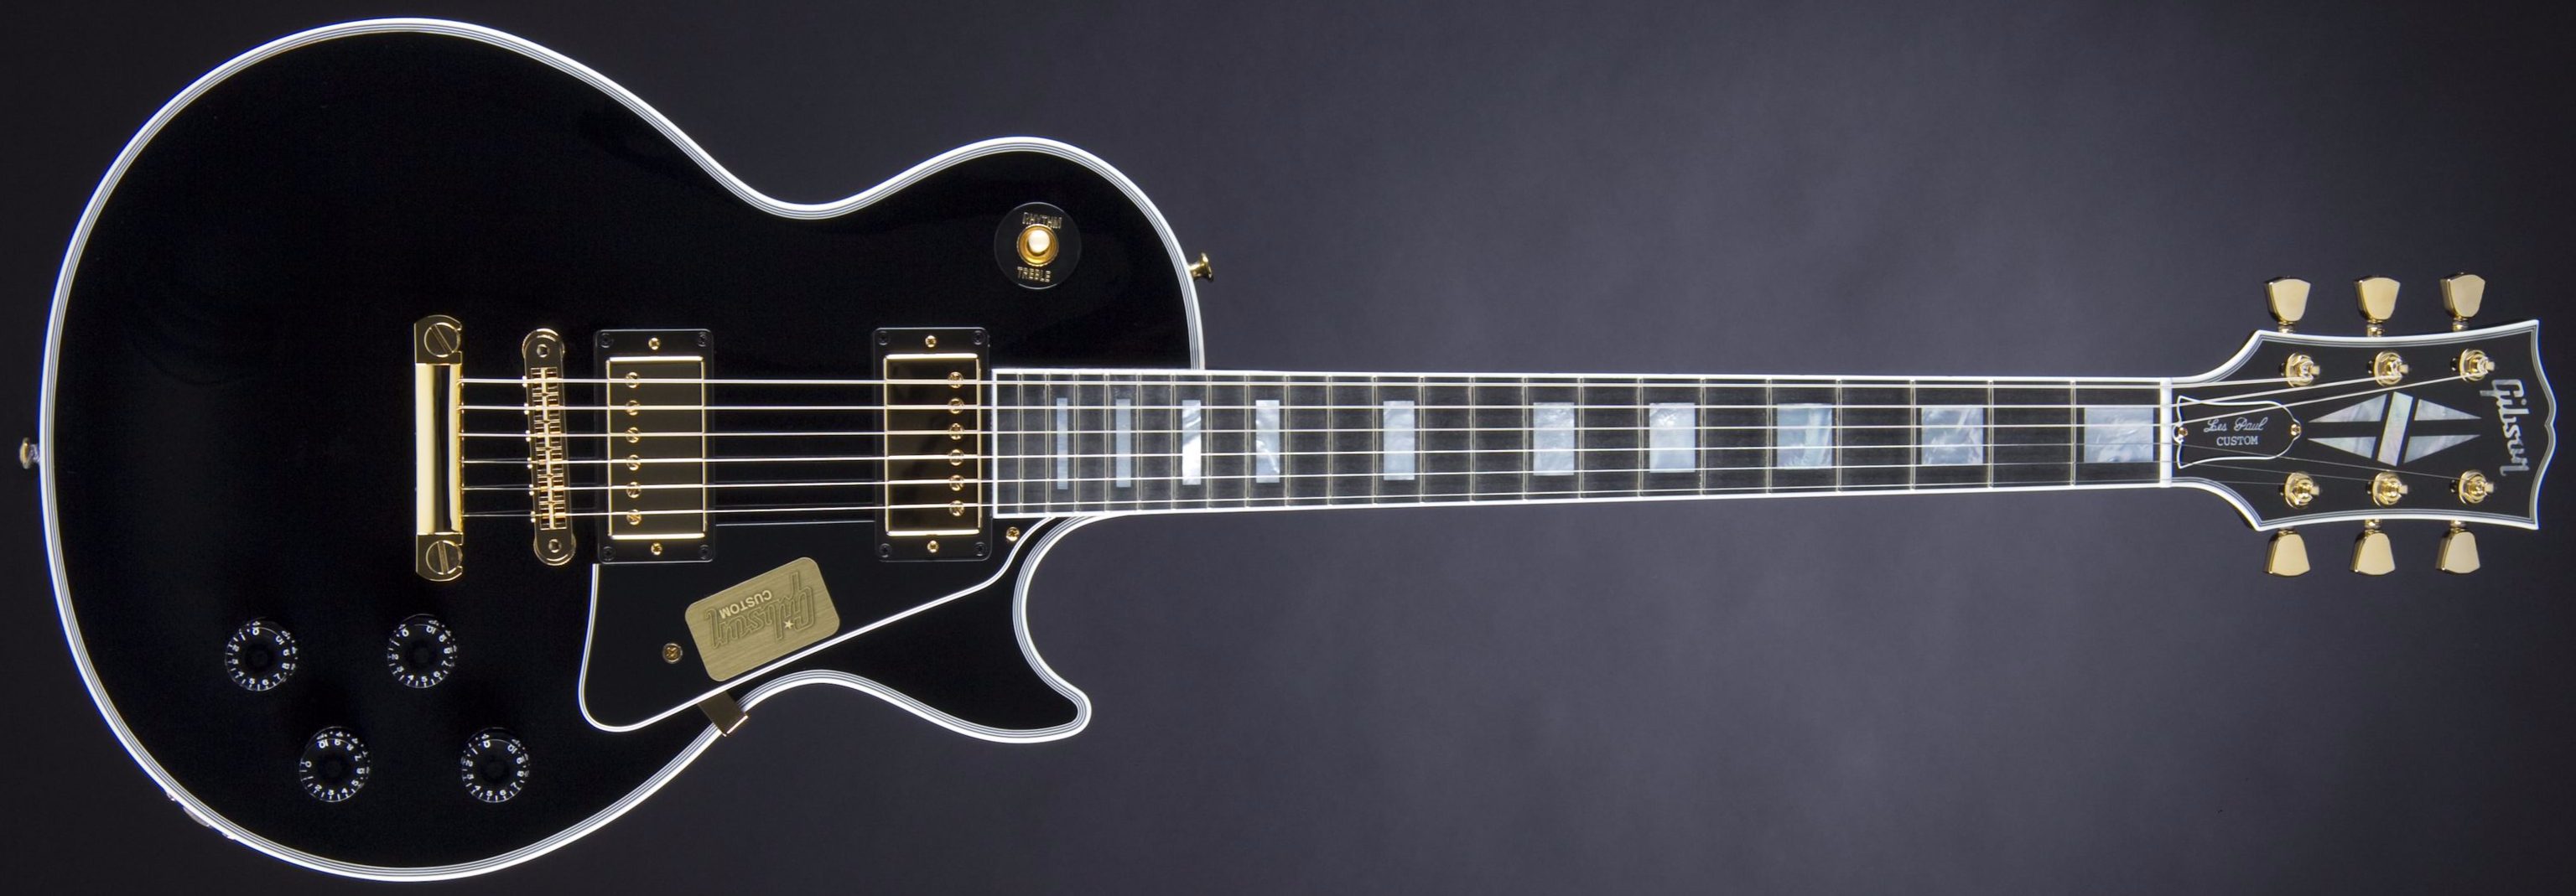 Gibson Les Paul Custom Ebony Front